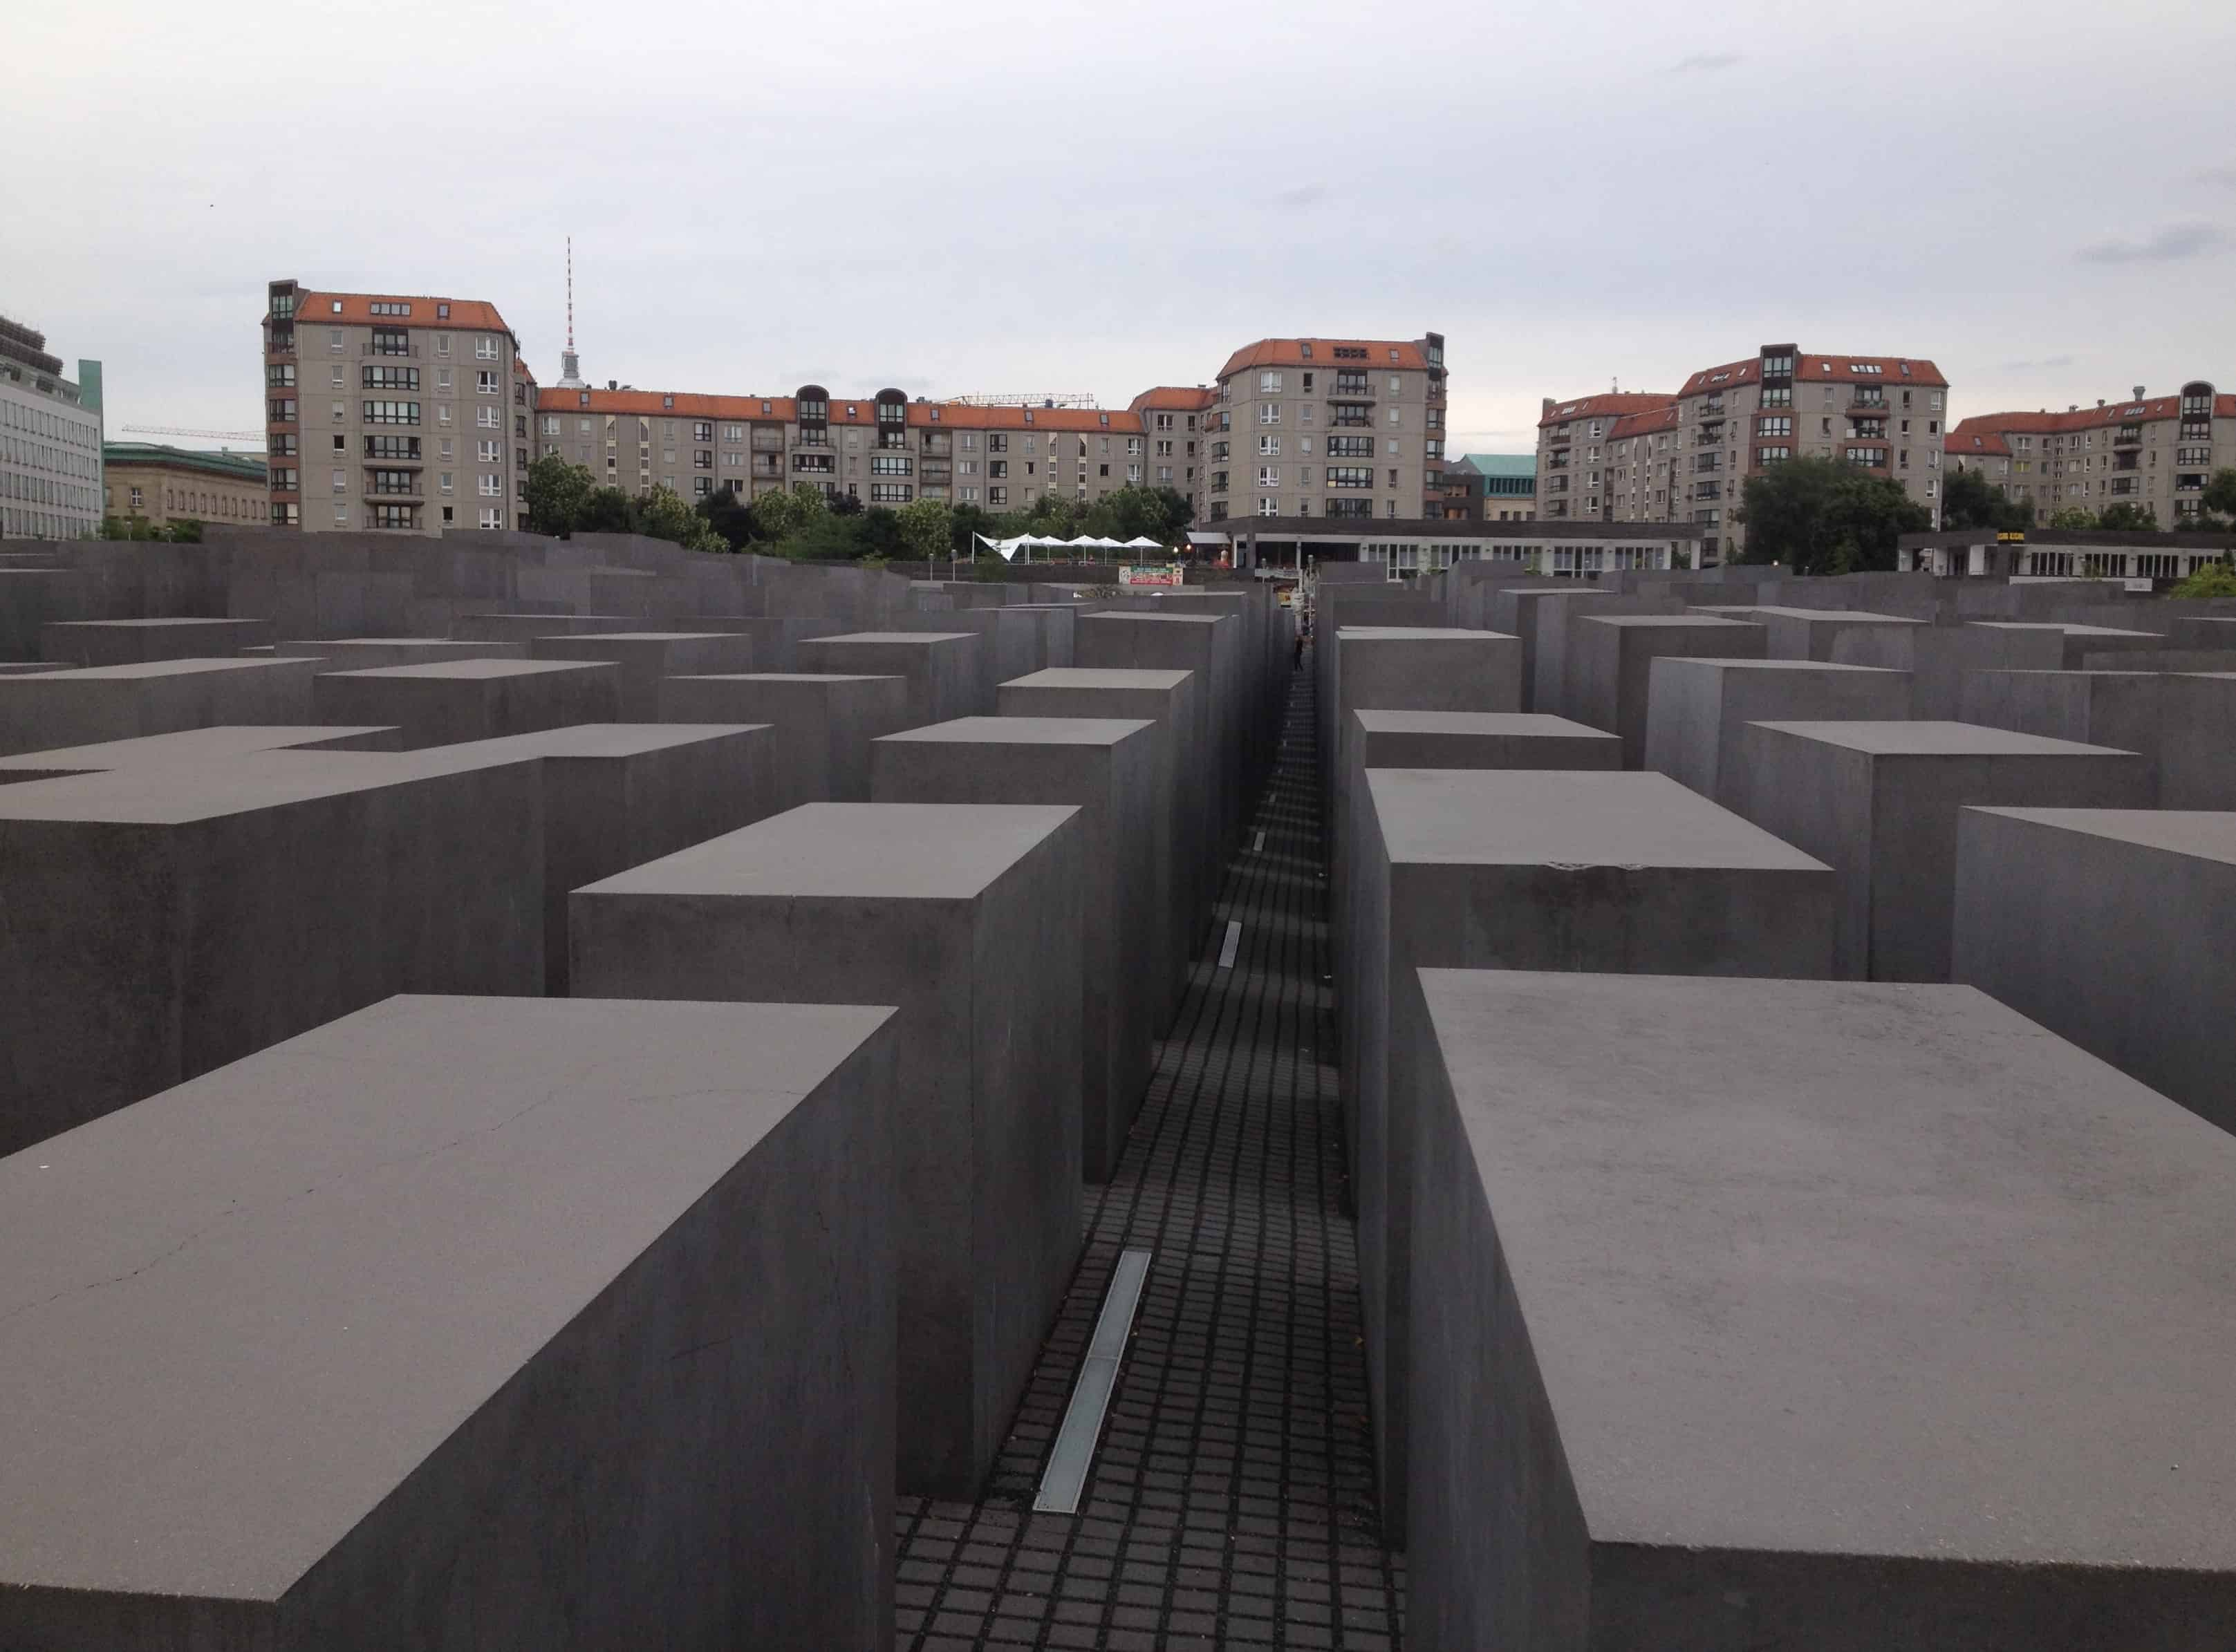 Reasons to Visit Berlin: The Holocaust Memorial is one of the top things to do in Berlin